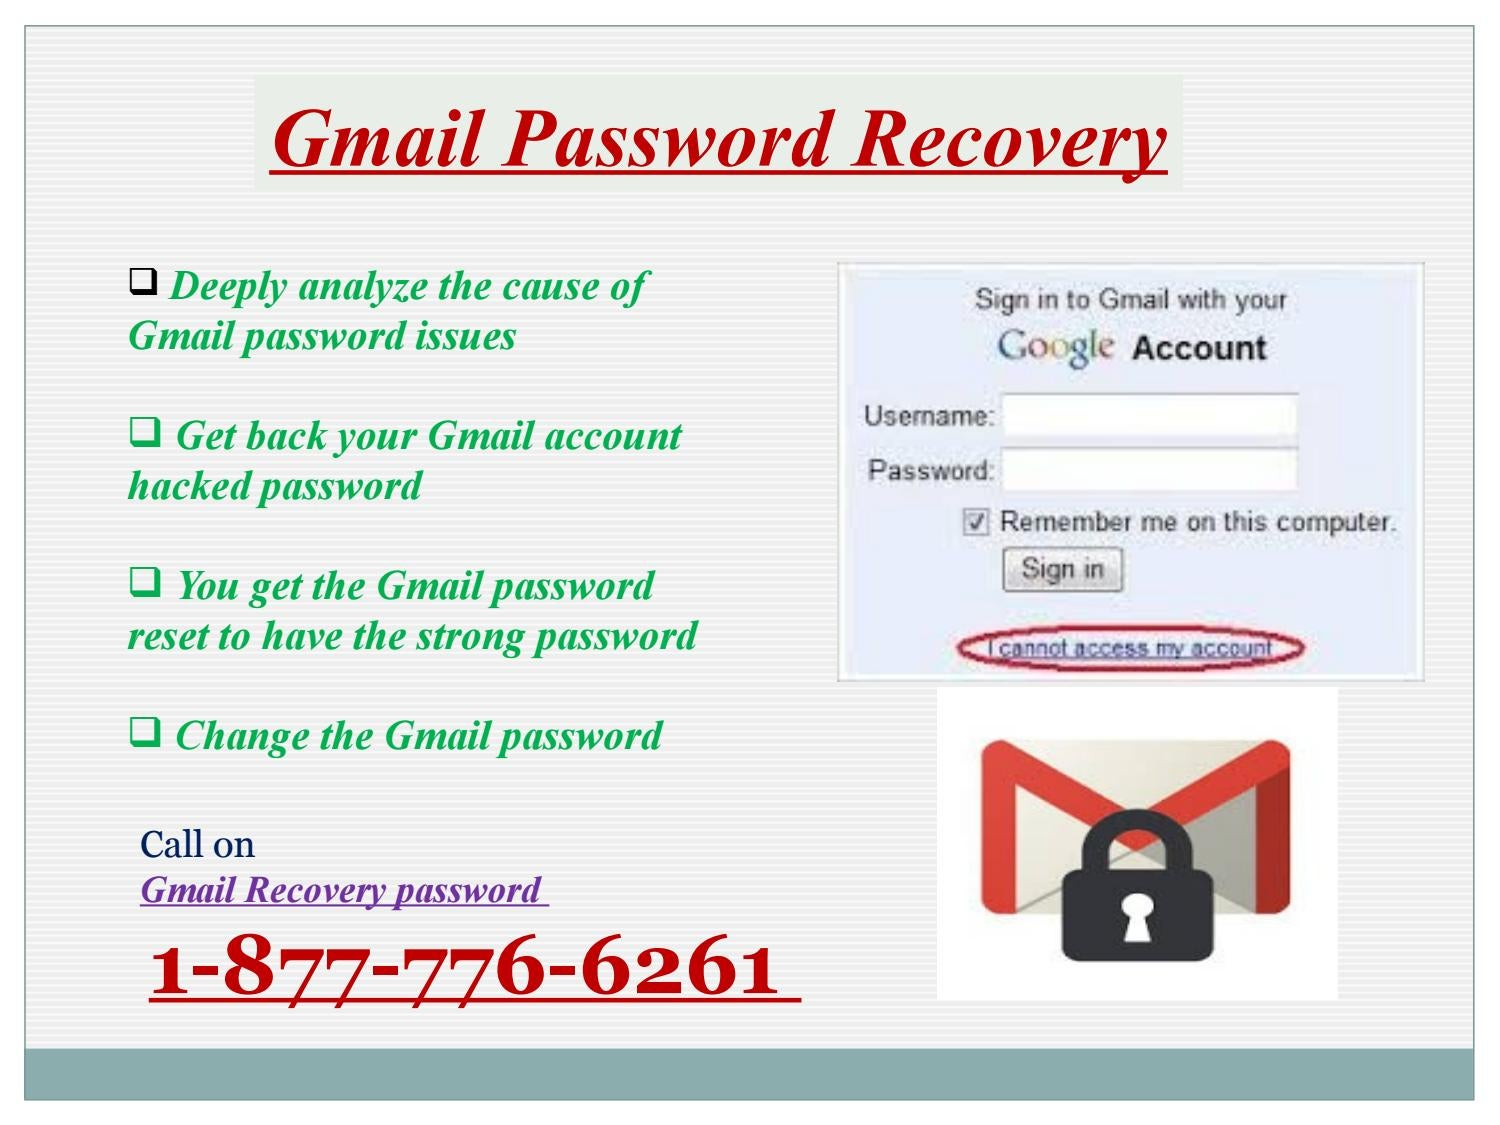 Gmail Recovery password 1-877-776-6261for account safety by